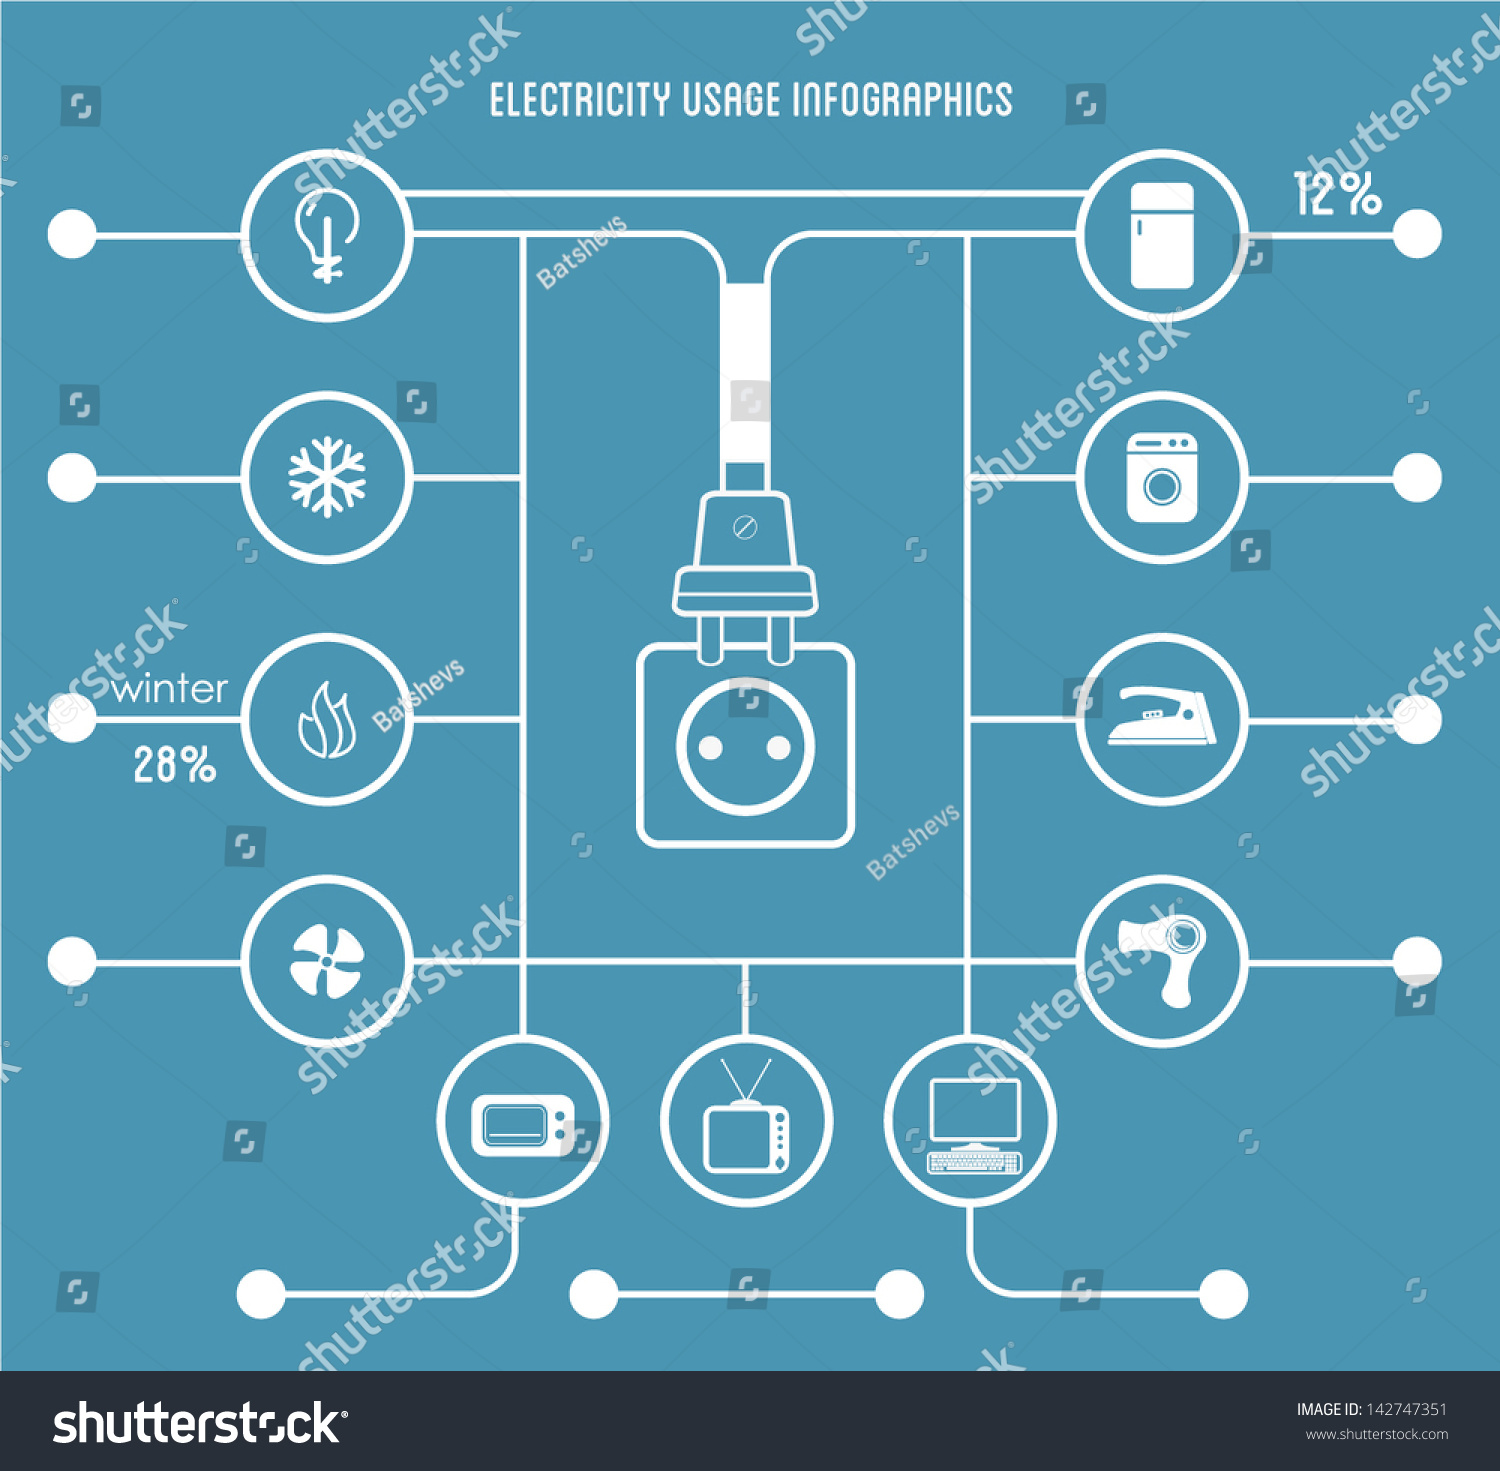 Electricity Usage Infographic Template Stock Vector (Royalty Free ...